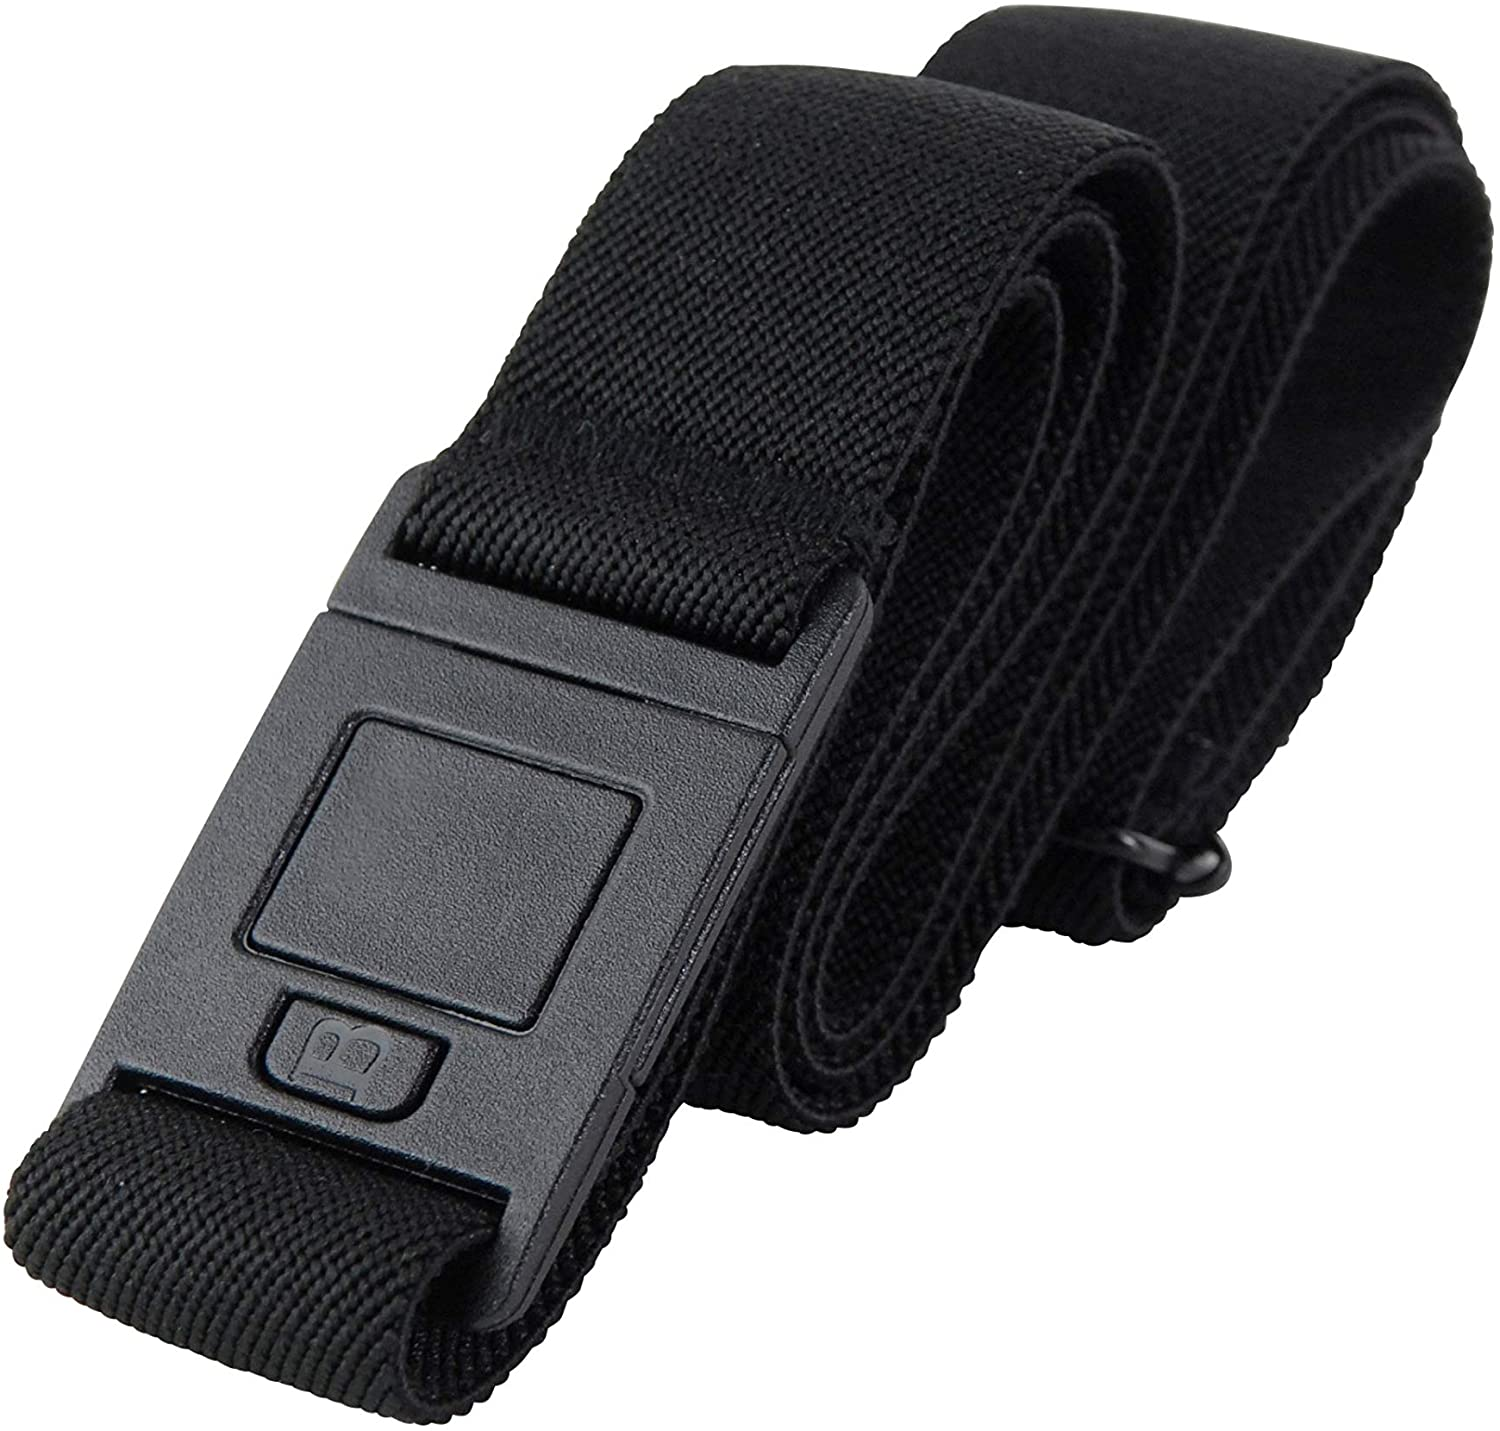 The Square Adjustable No Show Flat Buckle Belt by Beltaway, Comfortably Holds Your Pants Up: Clothing